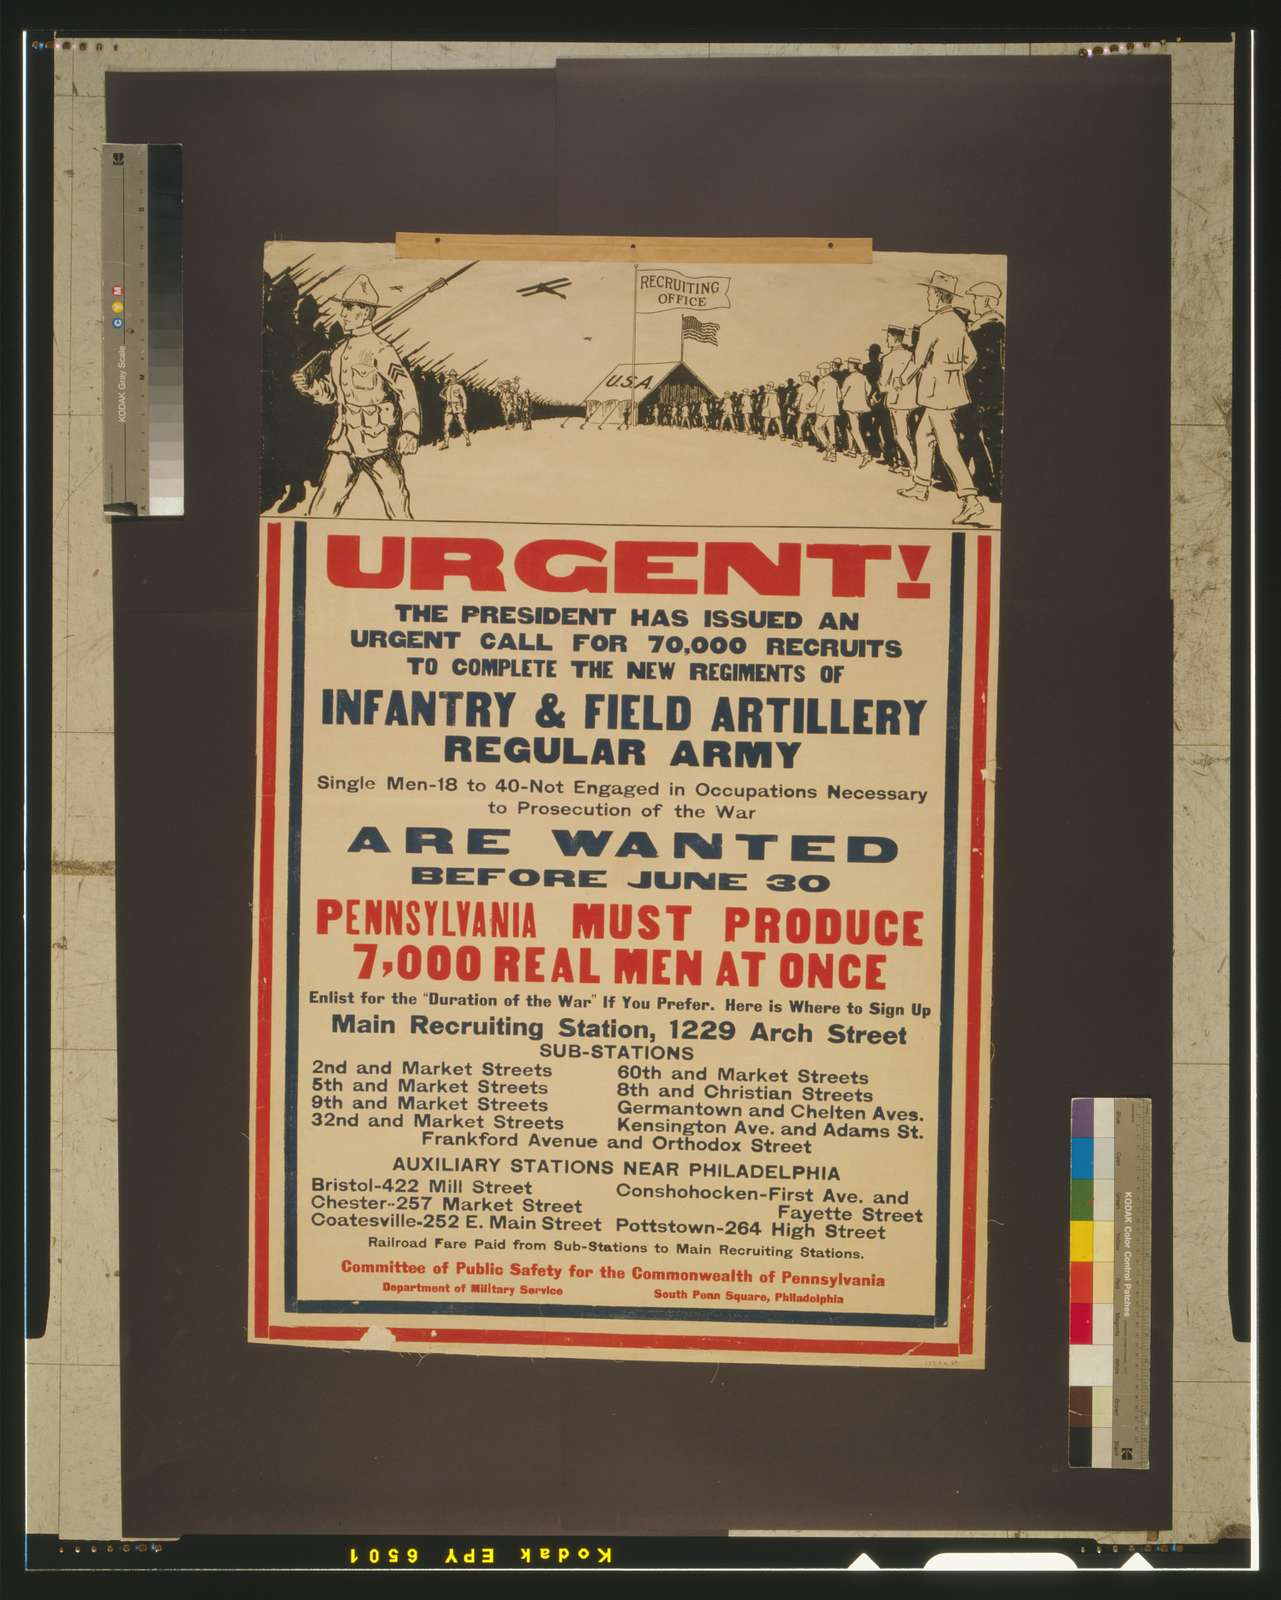 Urgent! The president has issued an urgent call for 70,000 recruits to complete the new regiments of infantry & field artillery, regular Army